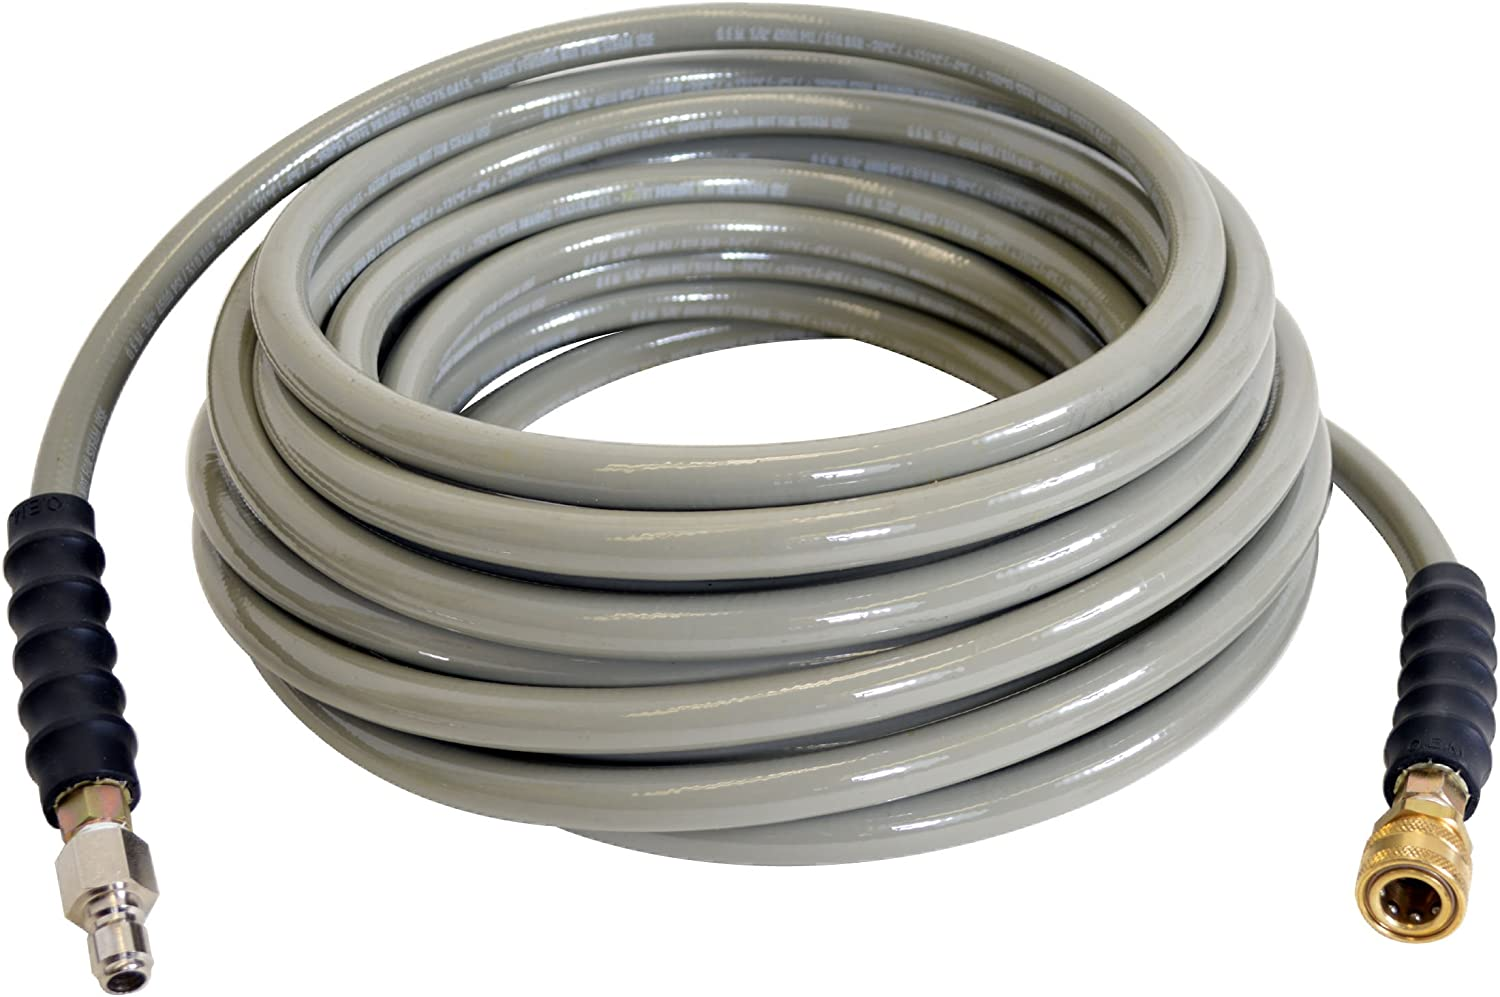 "SIMPSON Cleaning Armor 41114 3/8"" x 50' 4500 PSI Hot and Cold Water Replacement/ Extension Hose"